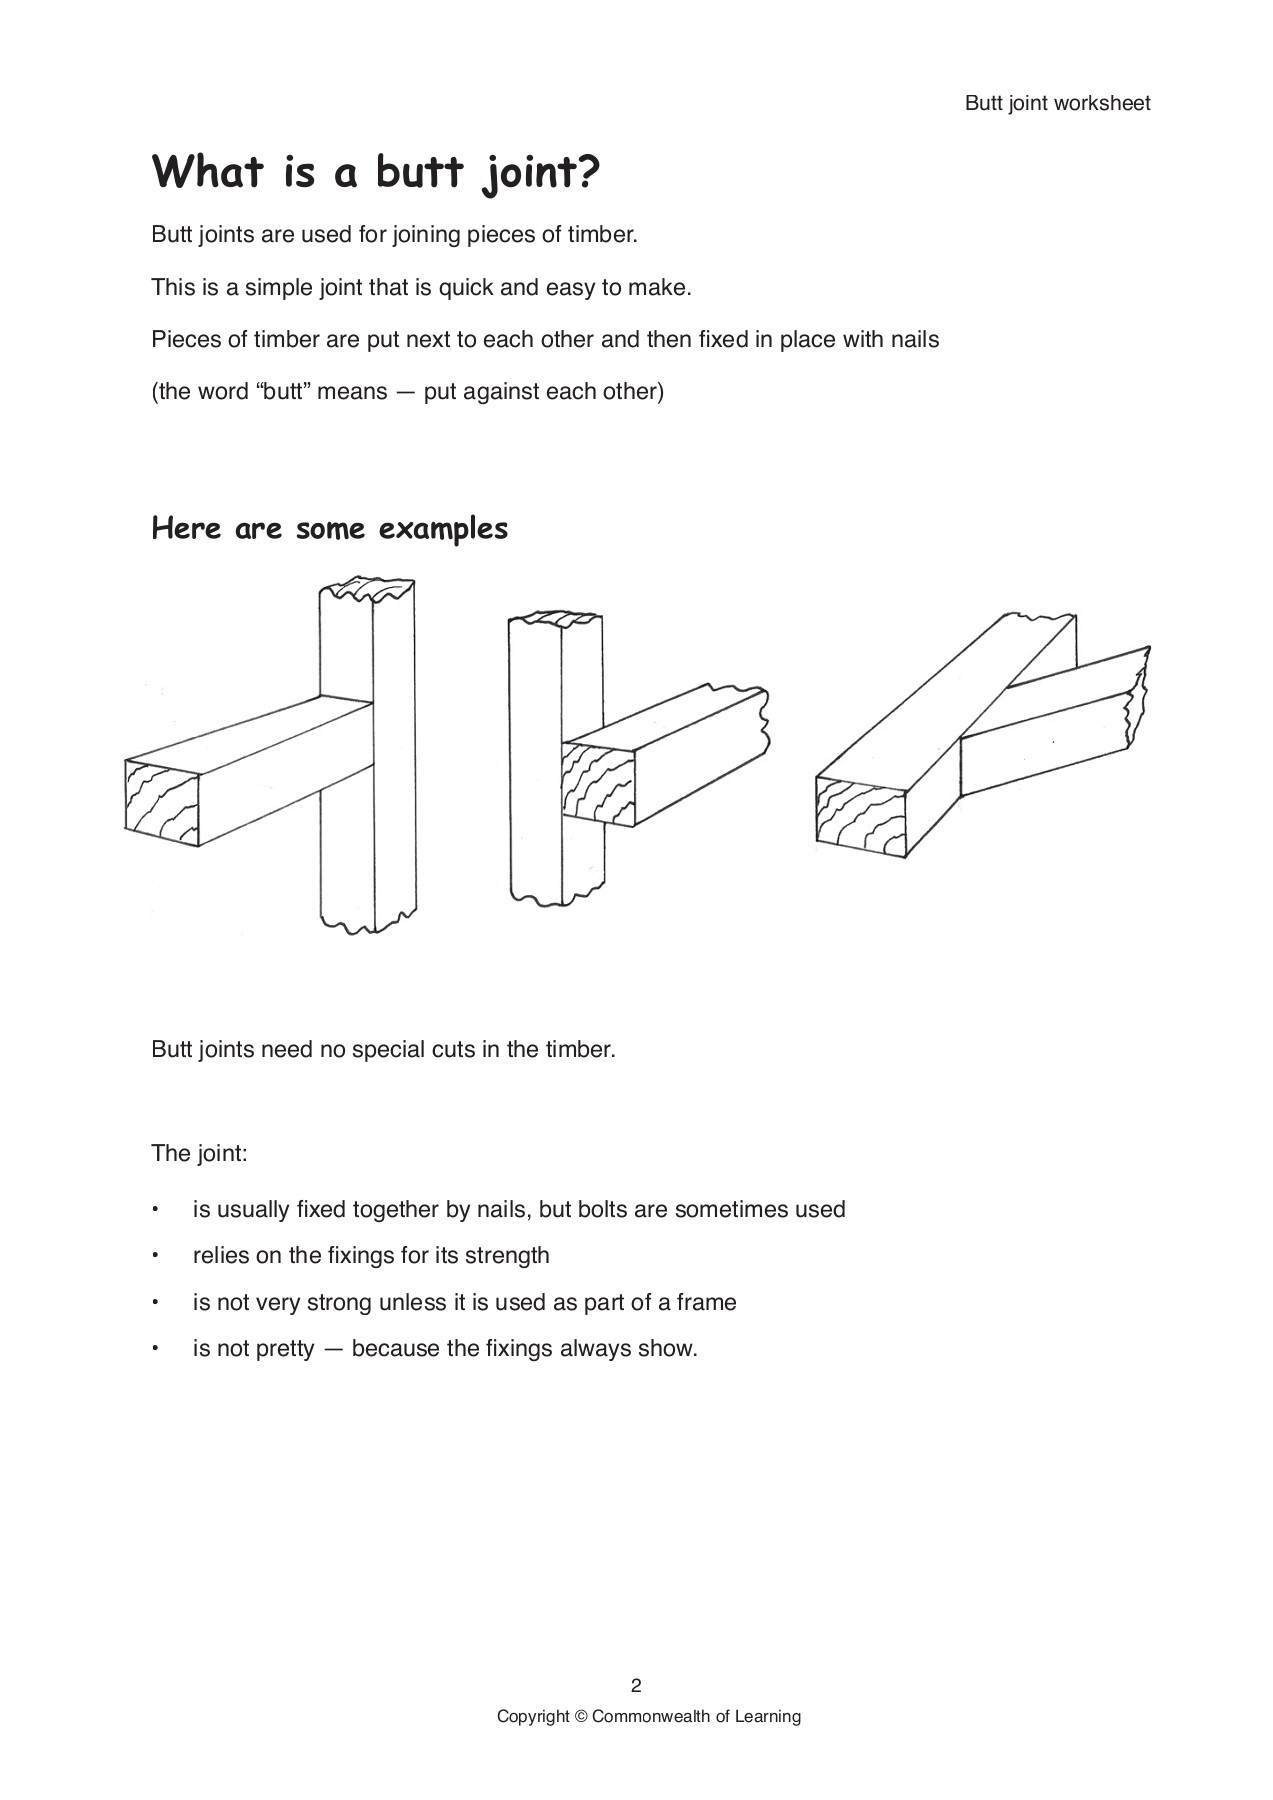 butt joint worksheet - WikiEducator Pages 1 - 8 - Text ...